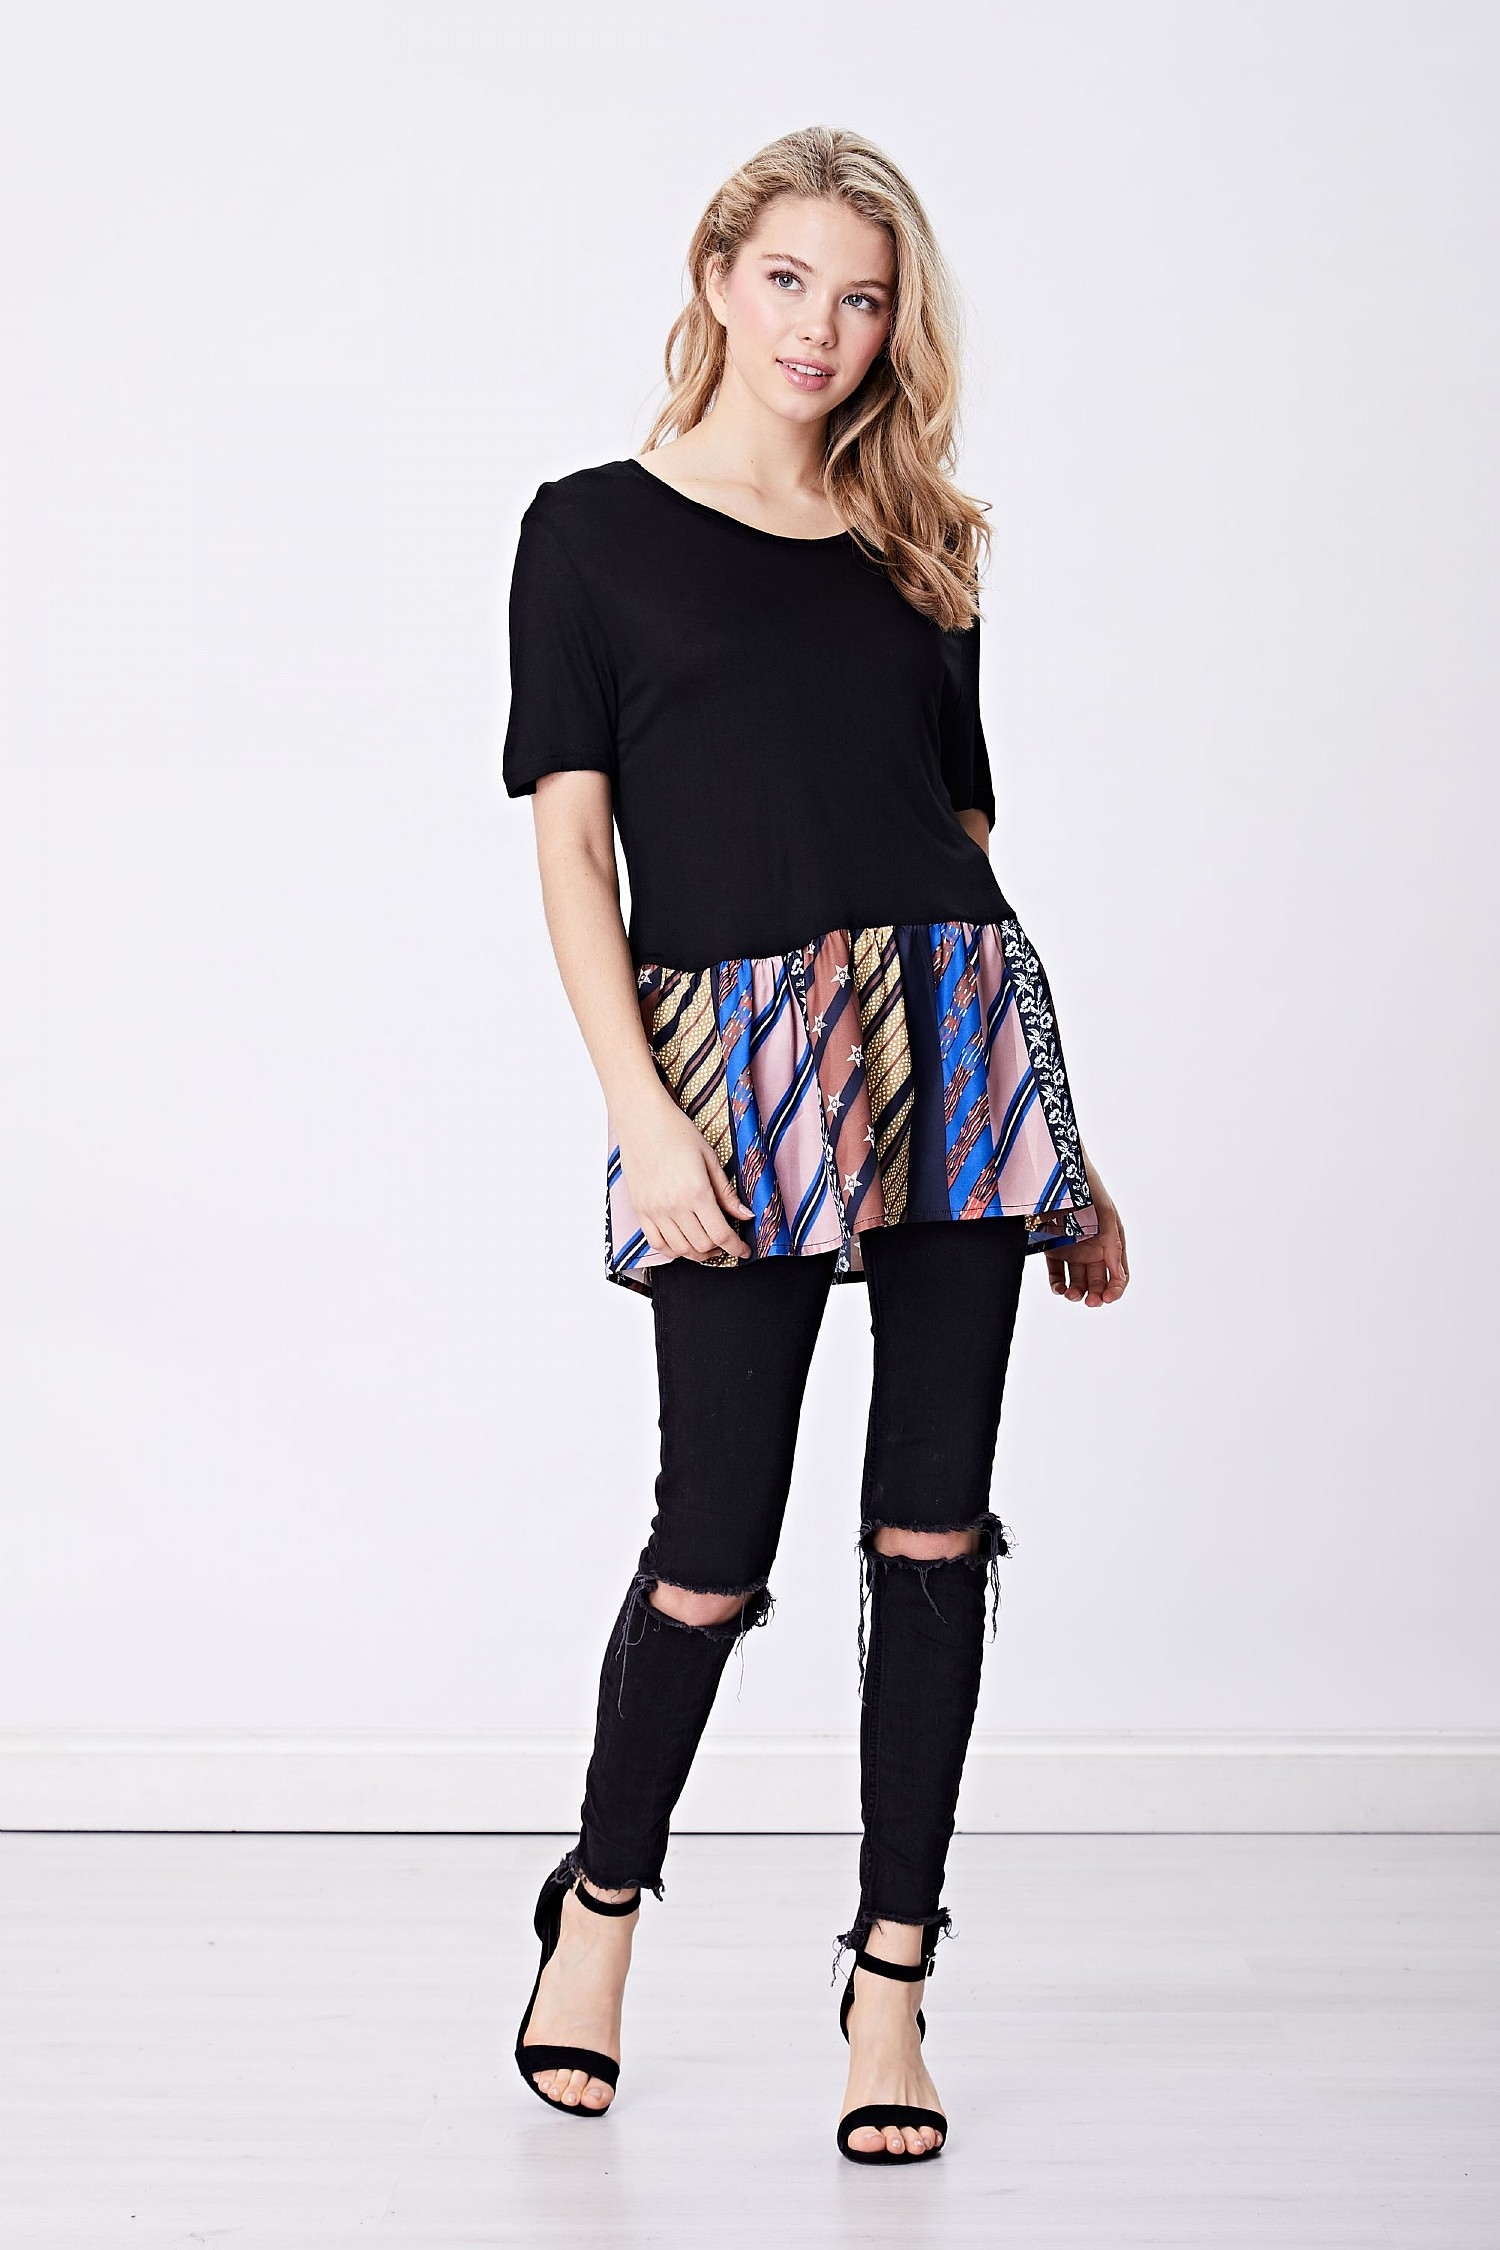 Black and Chain Print Top